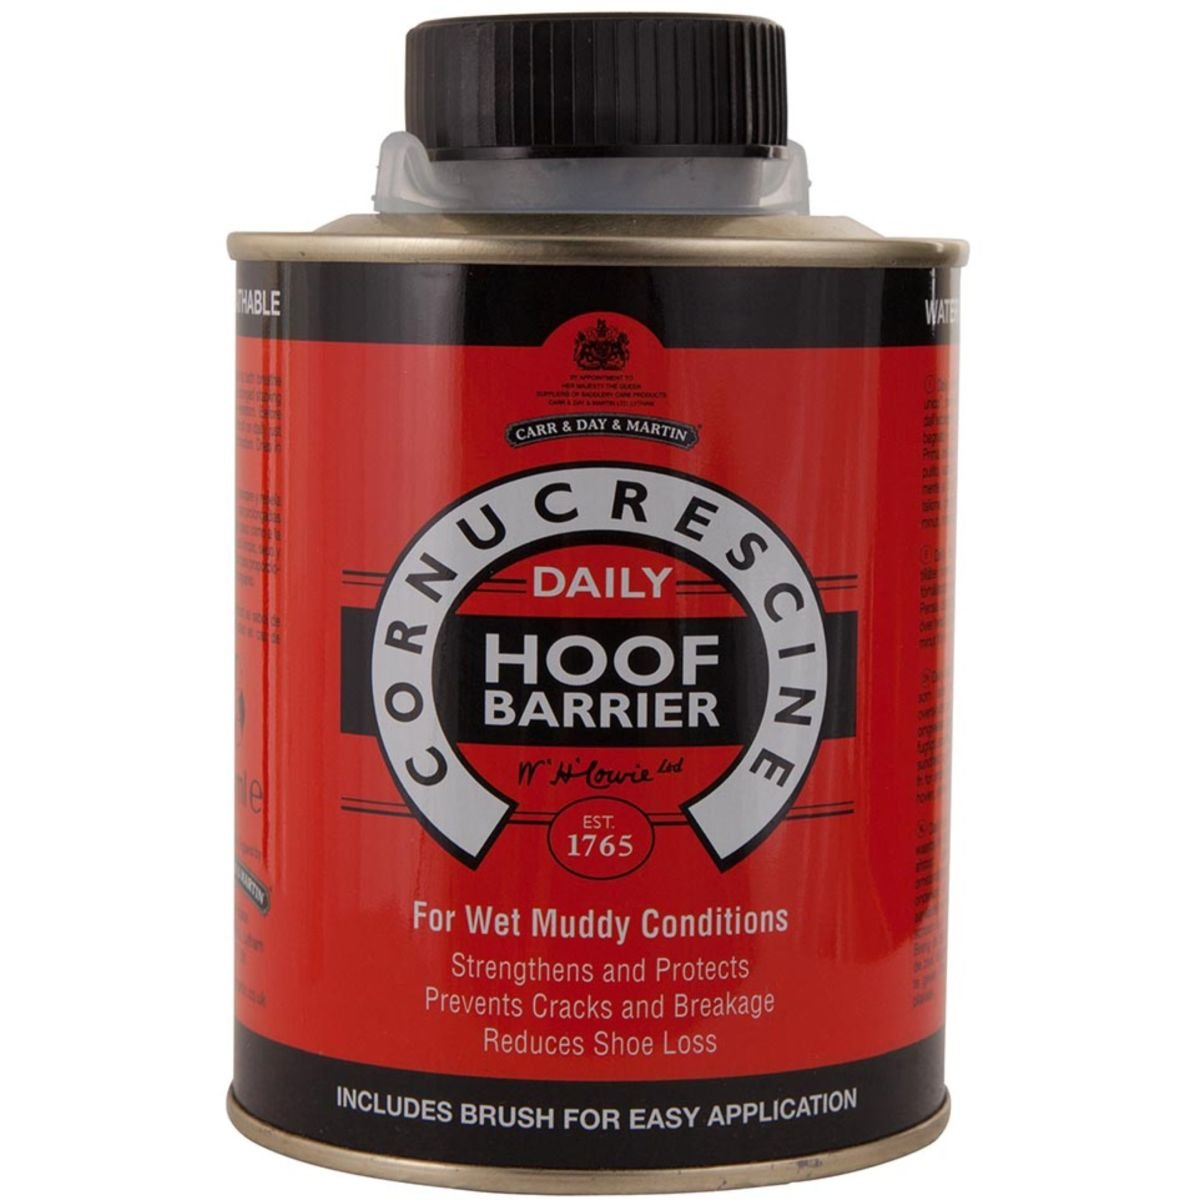 Afbeelding van Carr & Day Martin Hoefdressing Daily Hoef Barrier 500ml